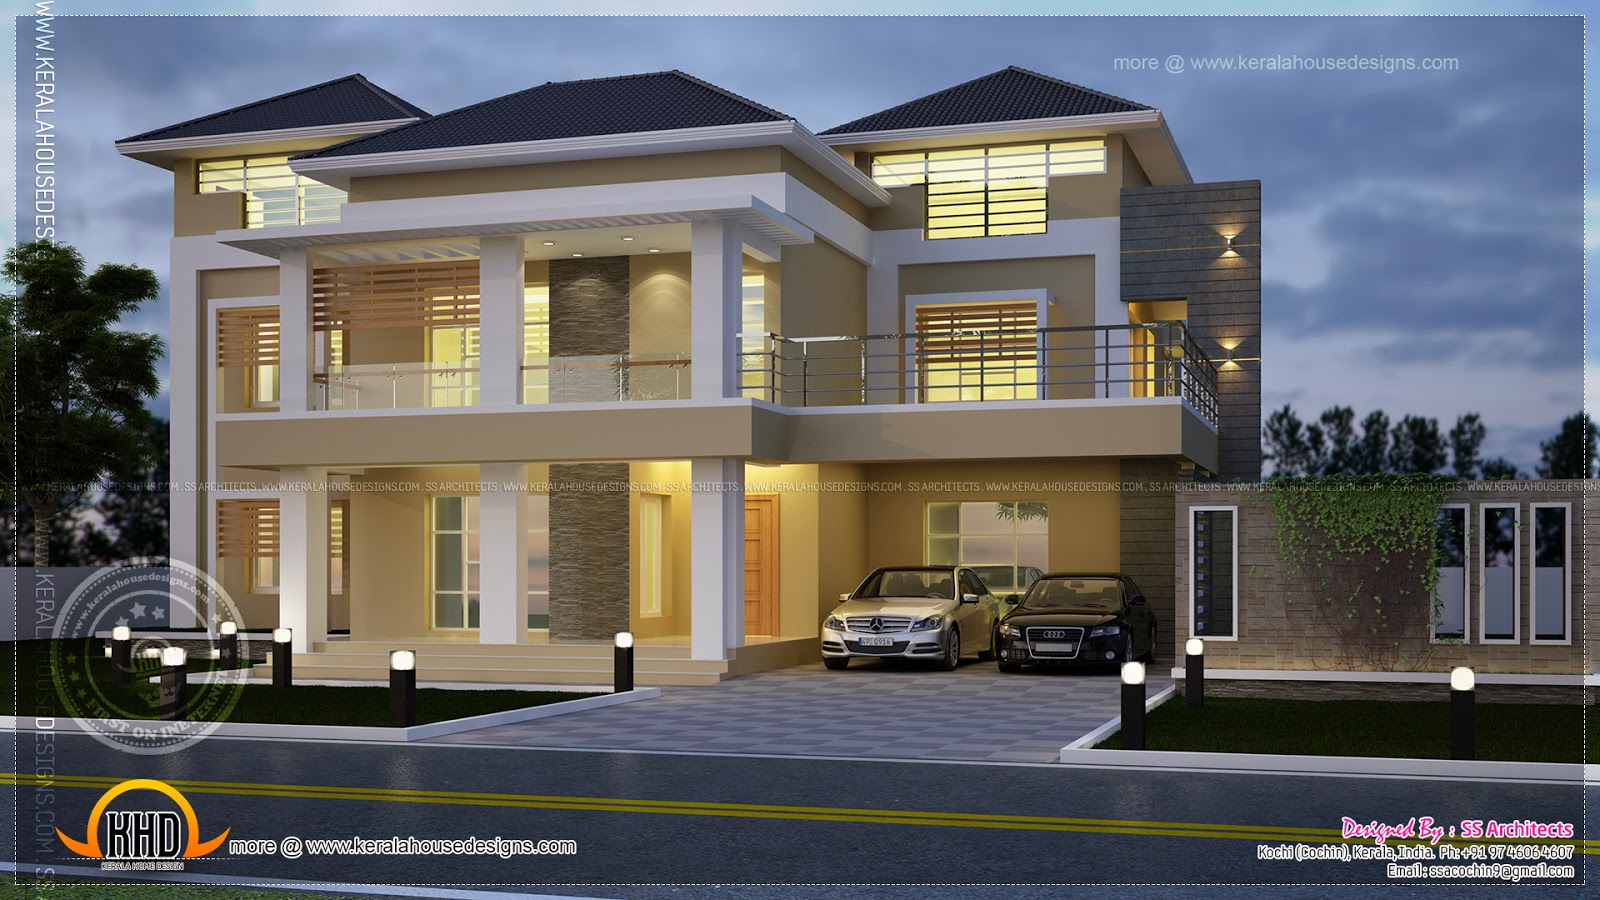 Modern villa night view elevation indian house plans for Modern villa plans and elevations